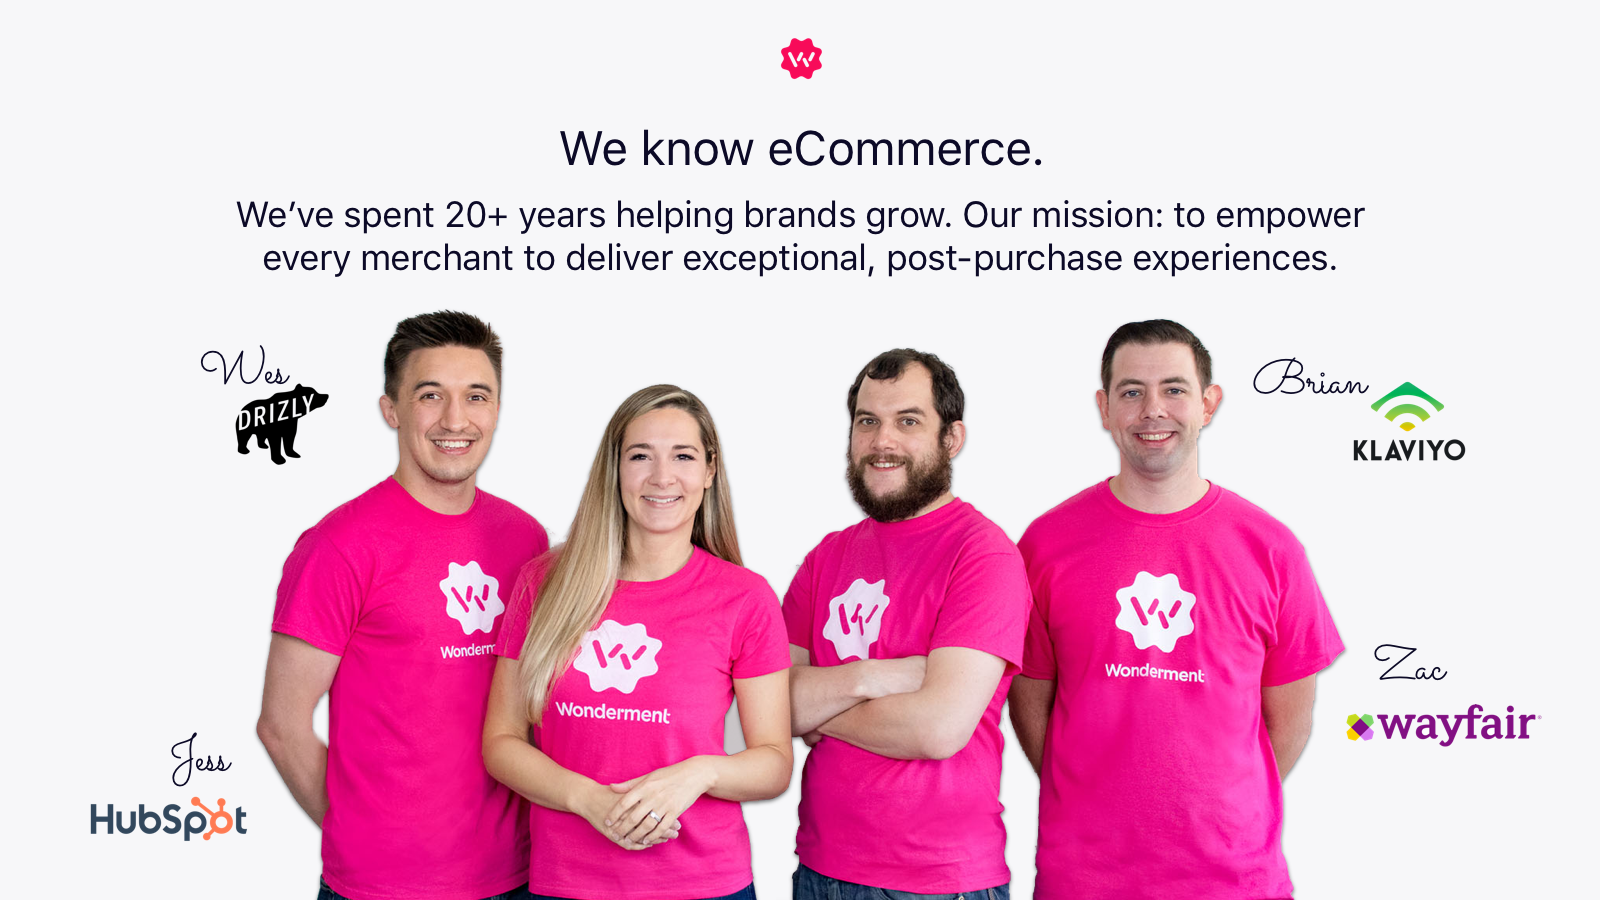 Built by eCommerce experts